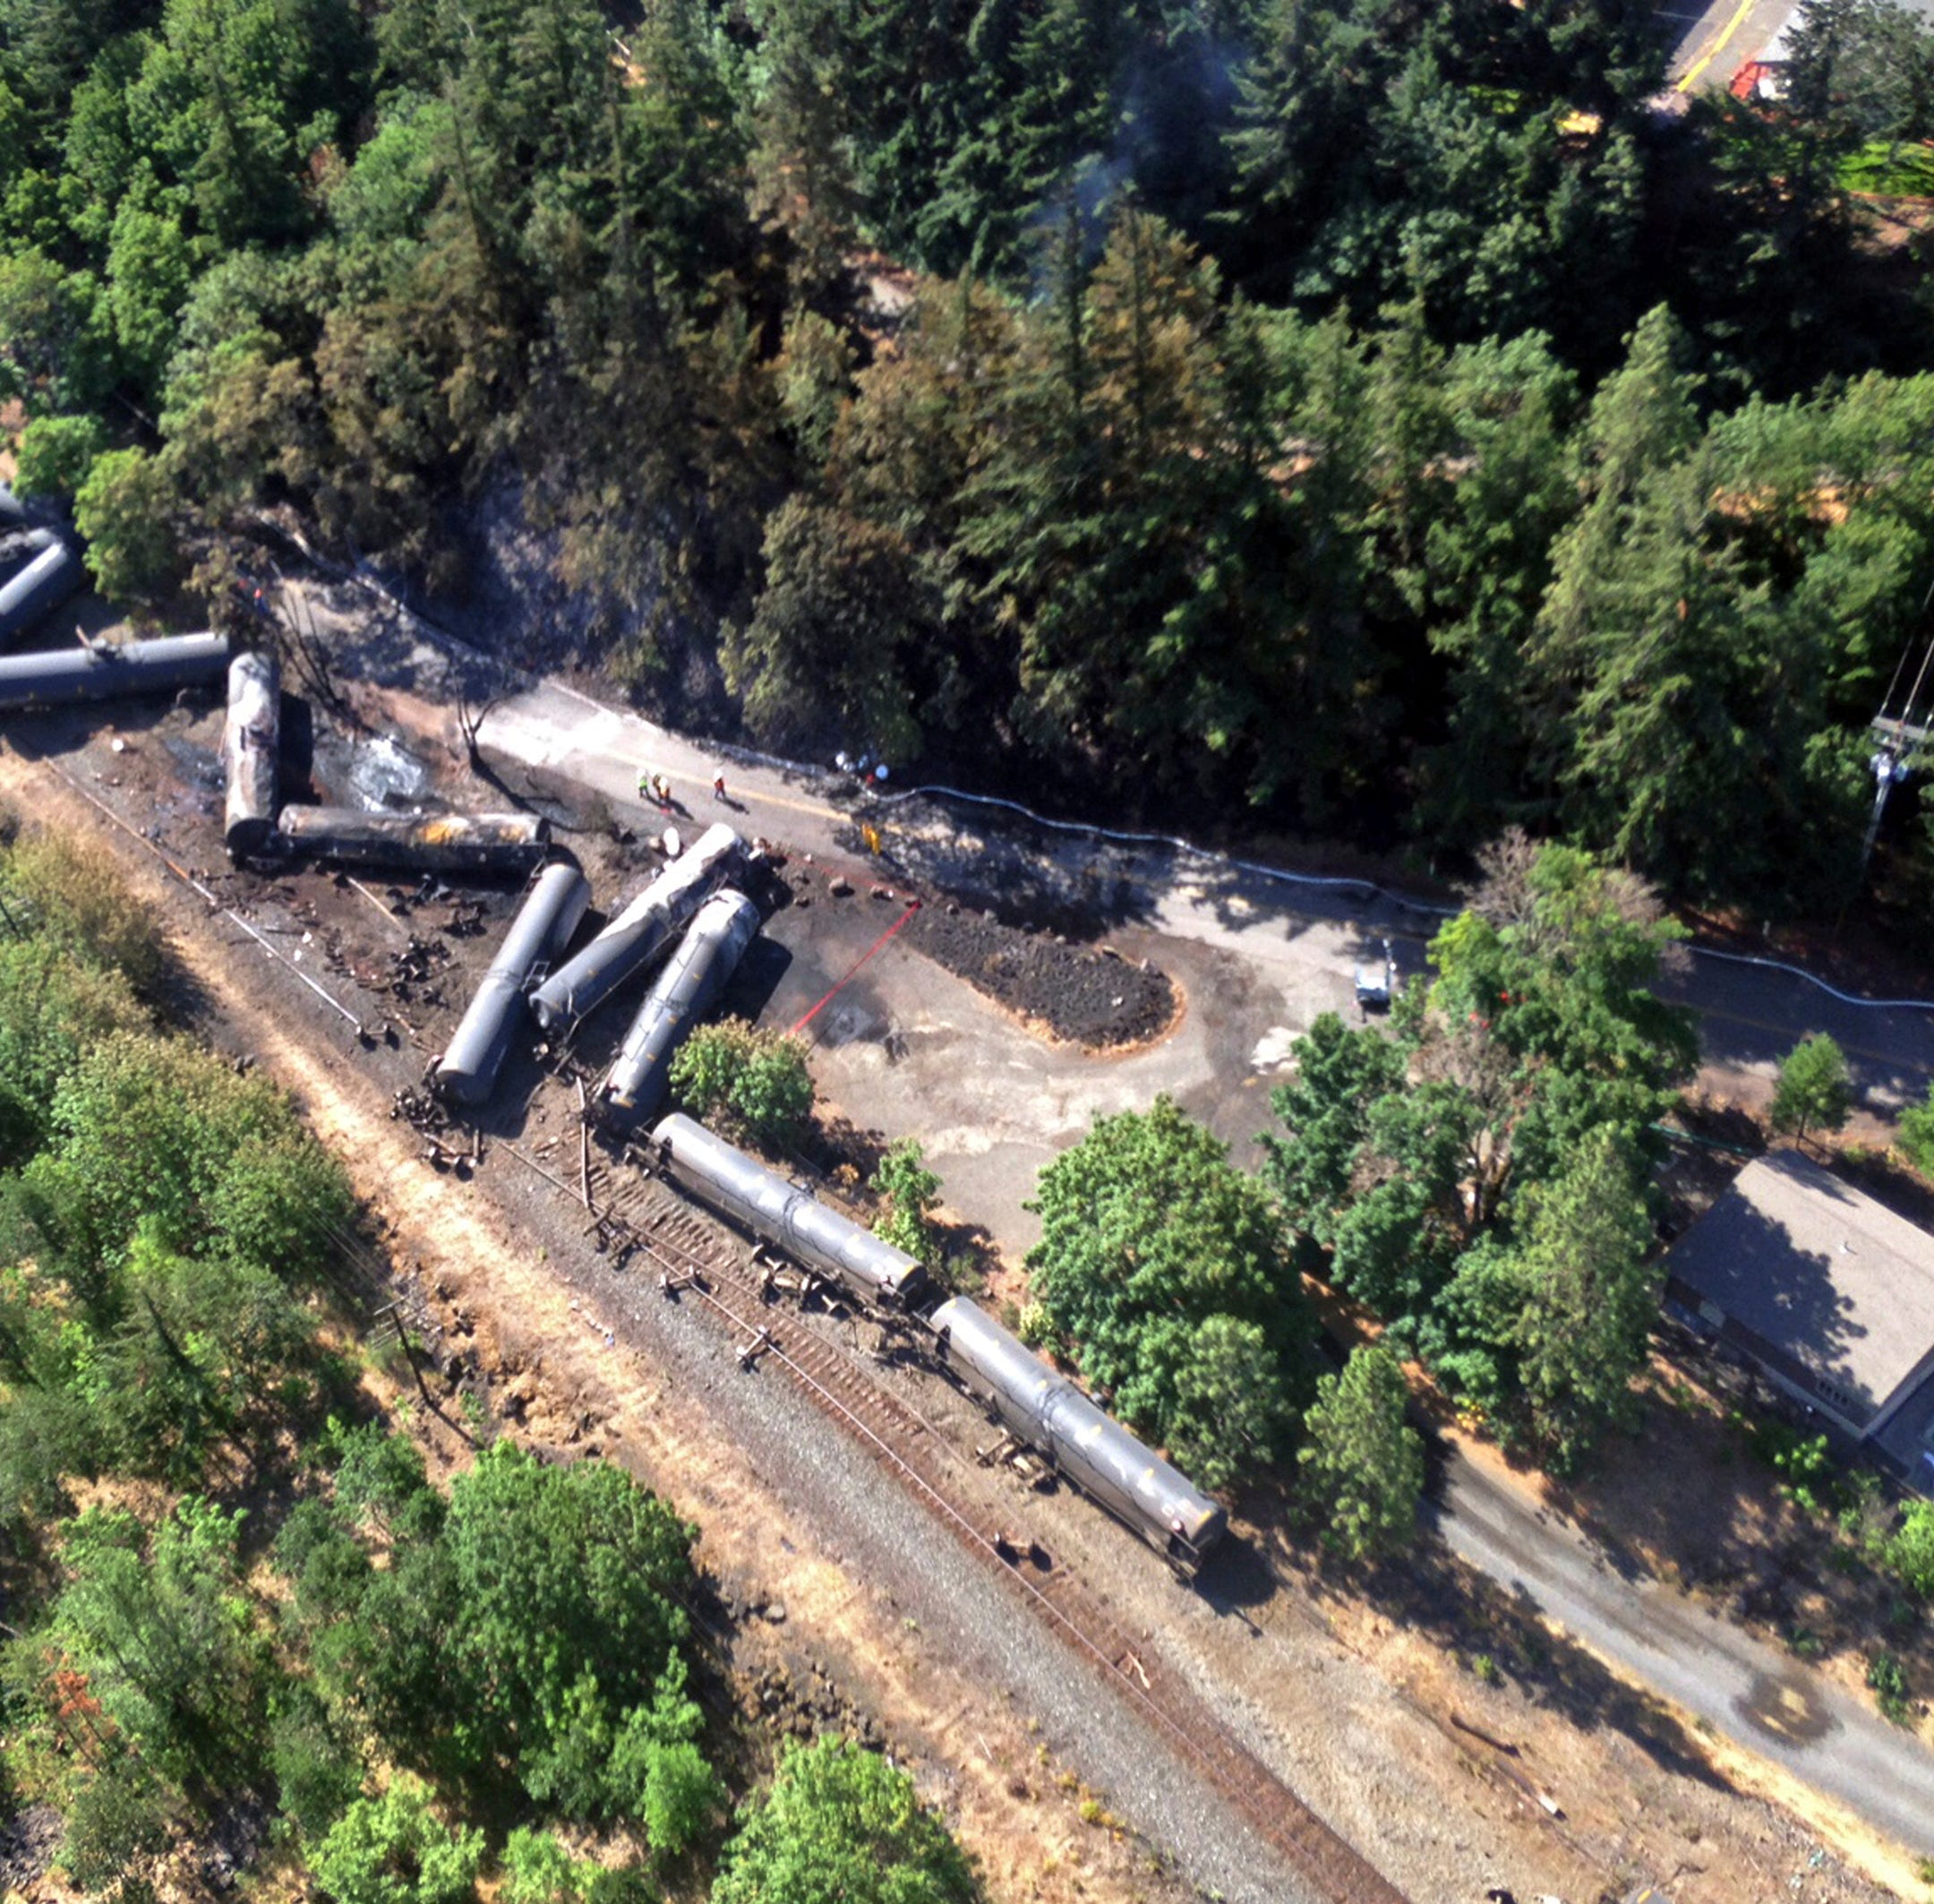 Feds withdraw proposal for 2-person train crews that came after explosions